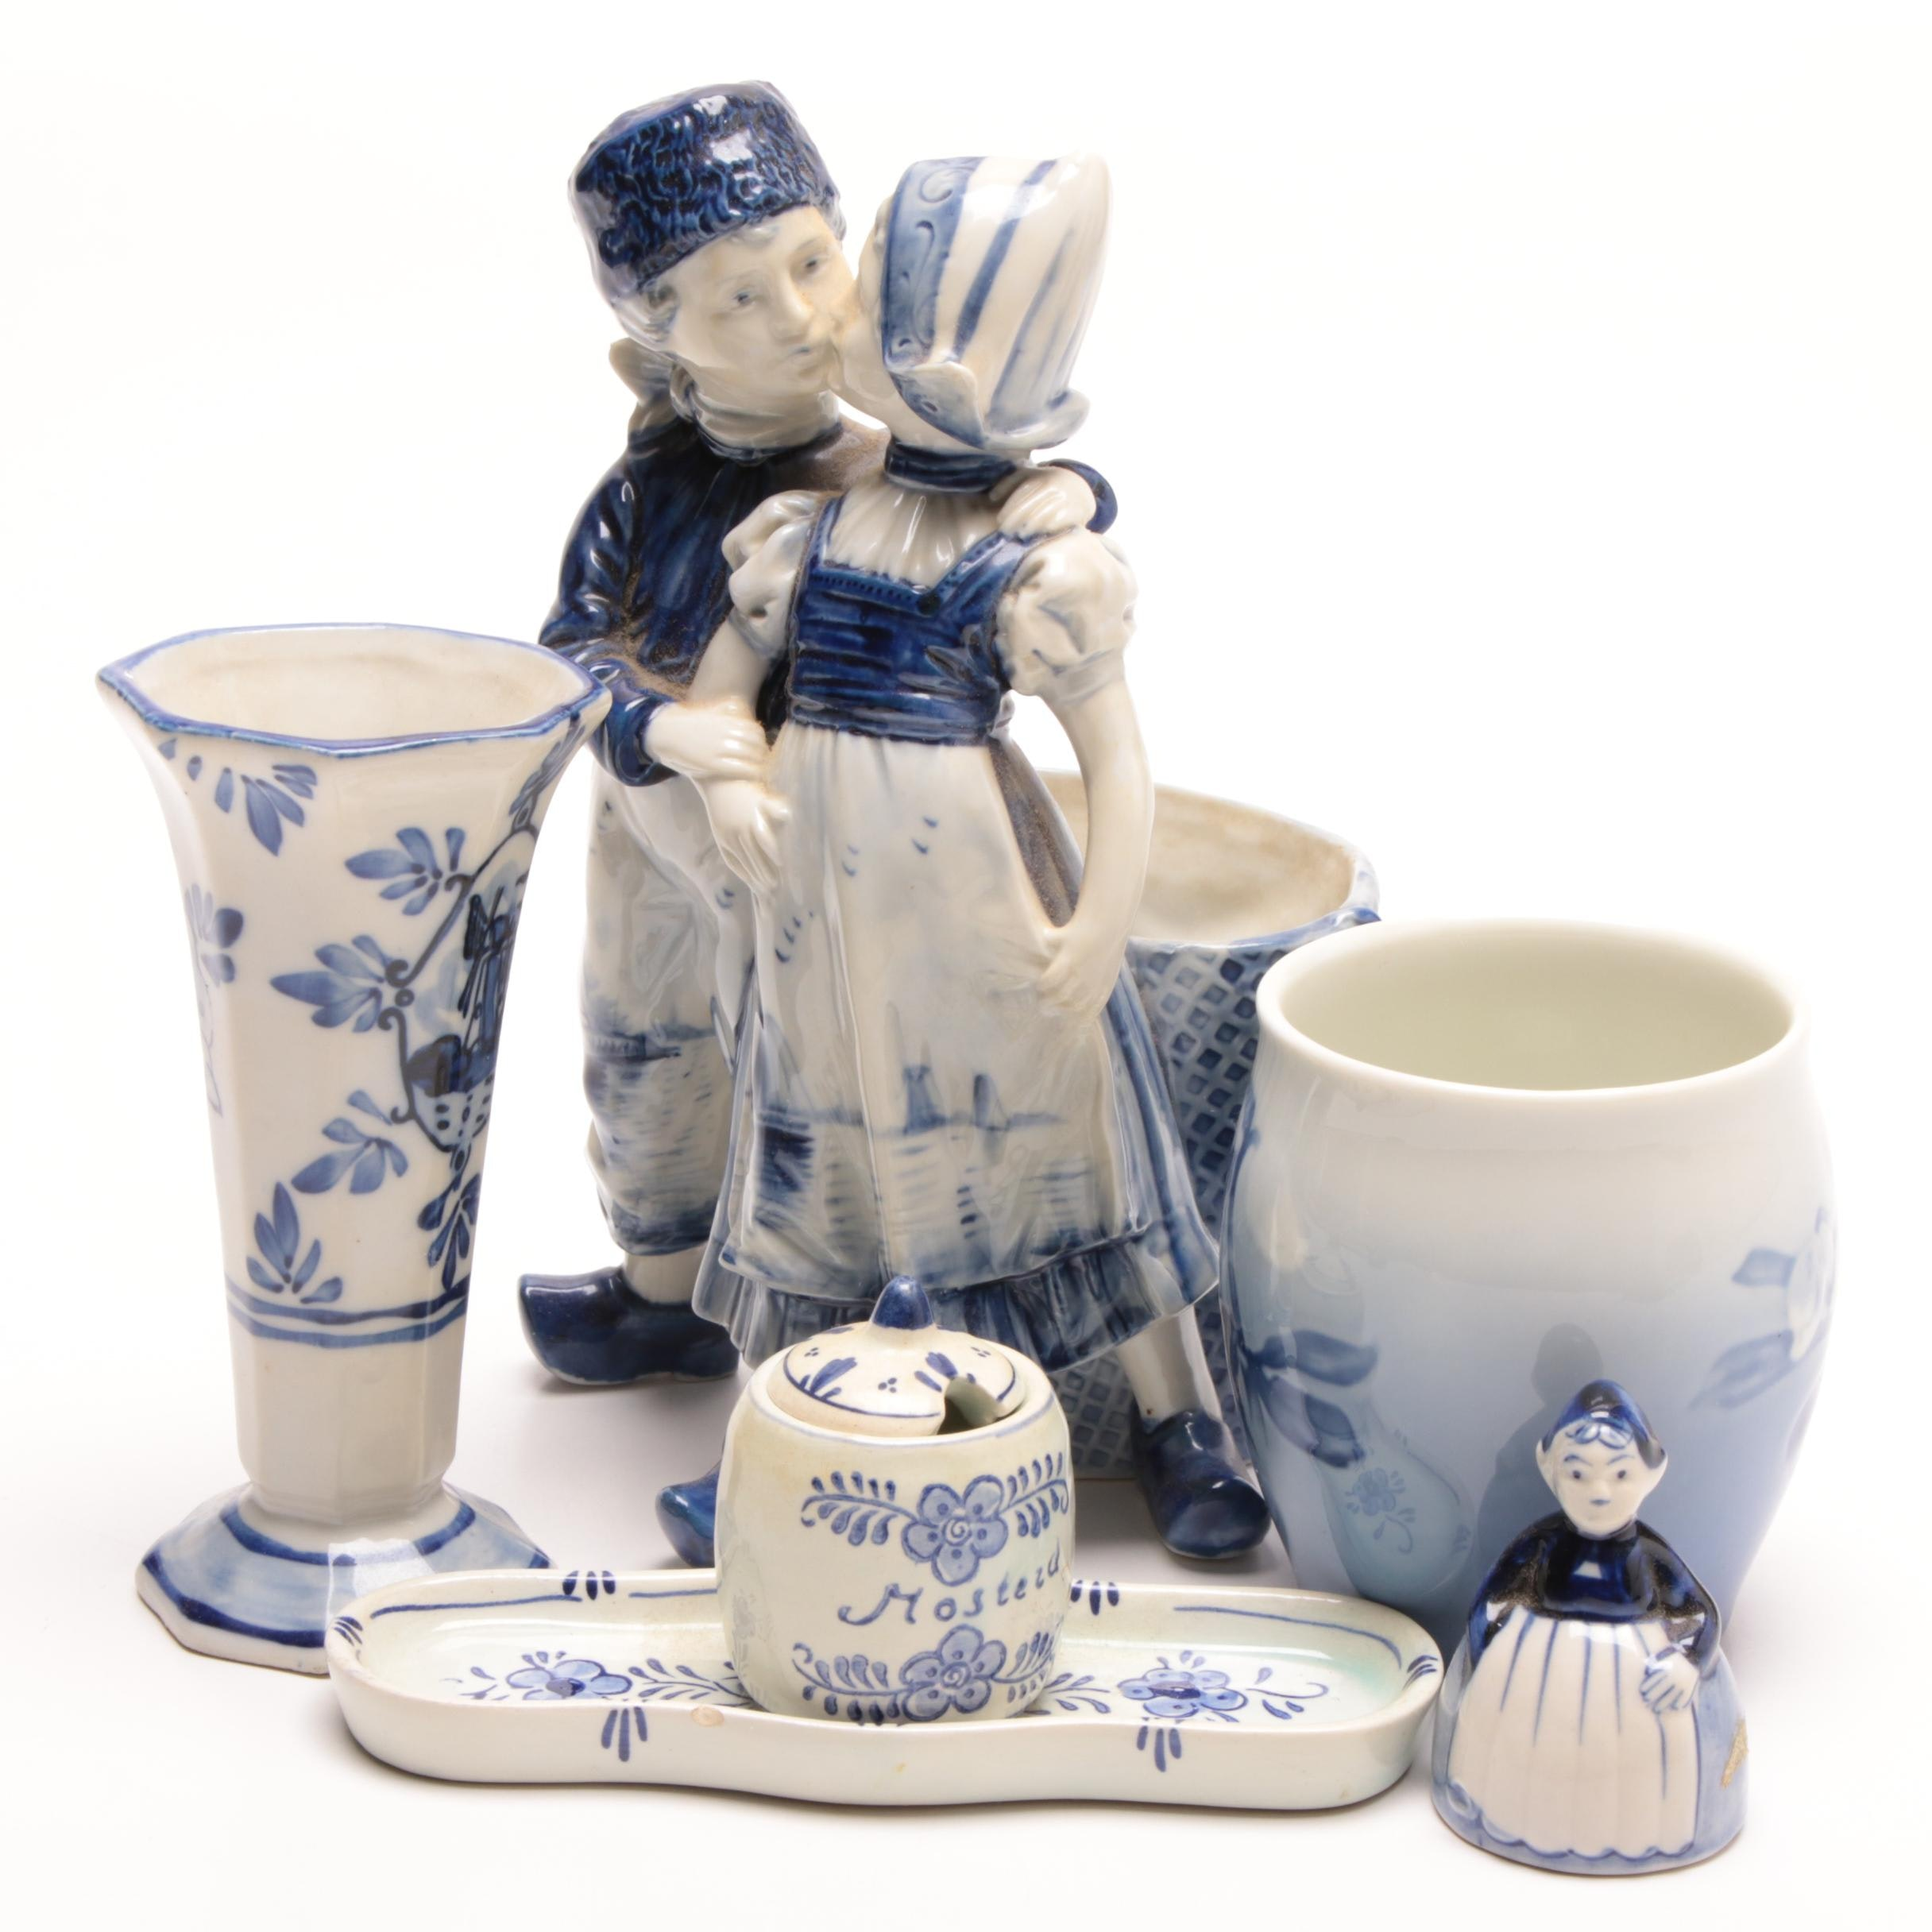 Delft and Delft Style Hand-Painted Figurines and Tableware